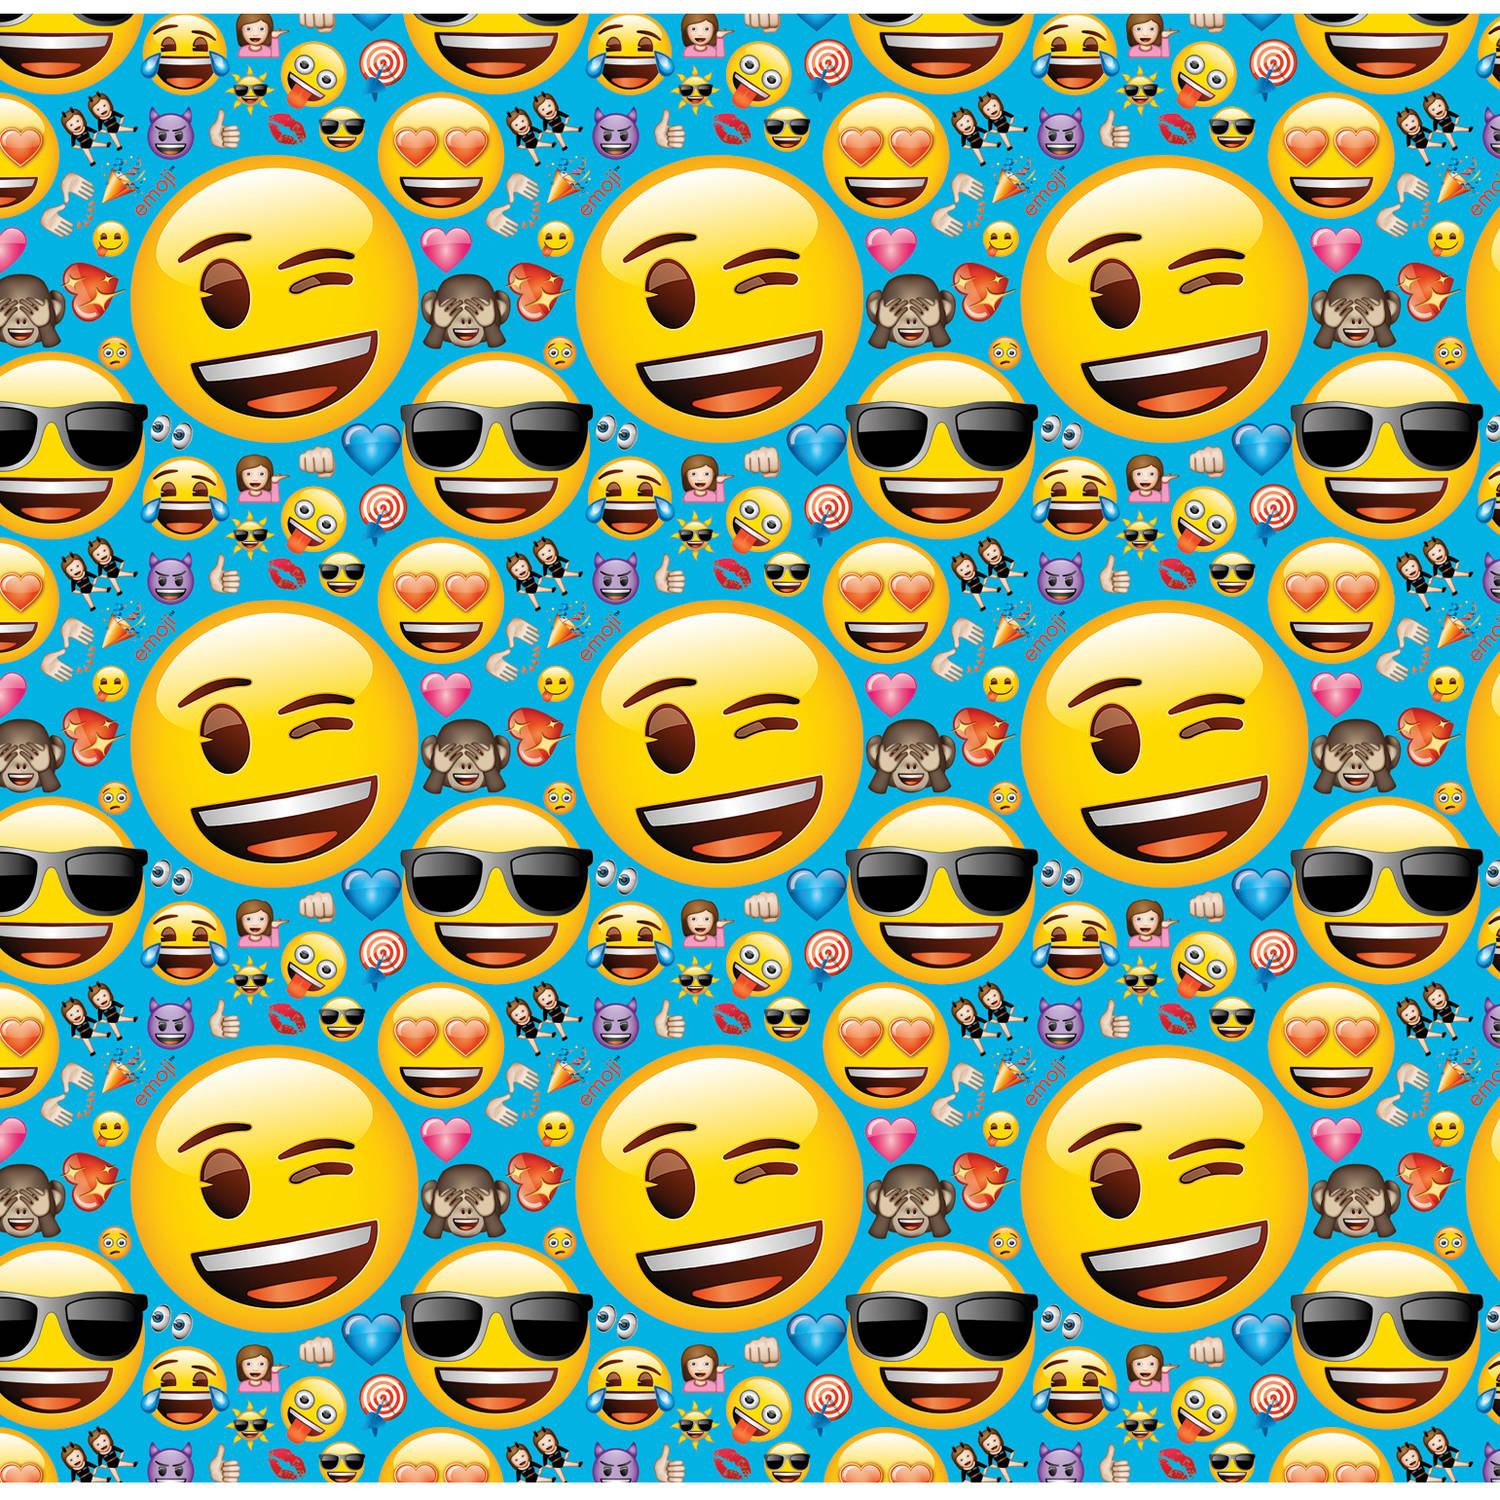 Emoji Wrapping Paper, 5 x 2.5 ft, 1ct